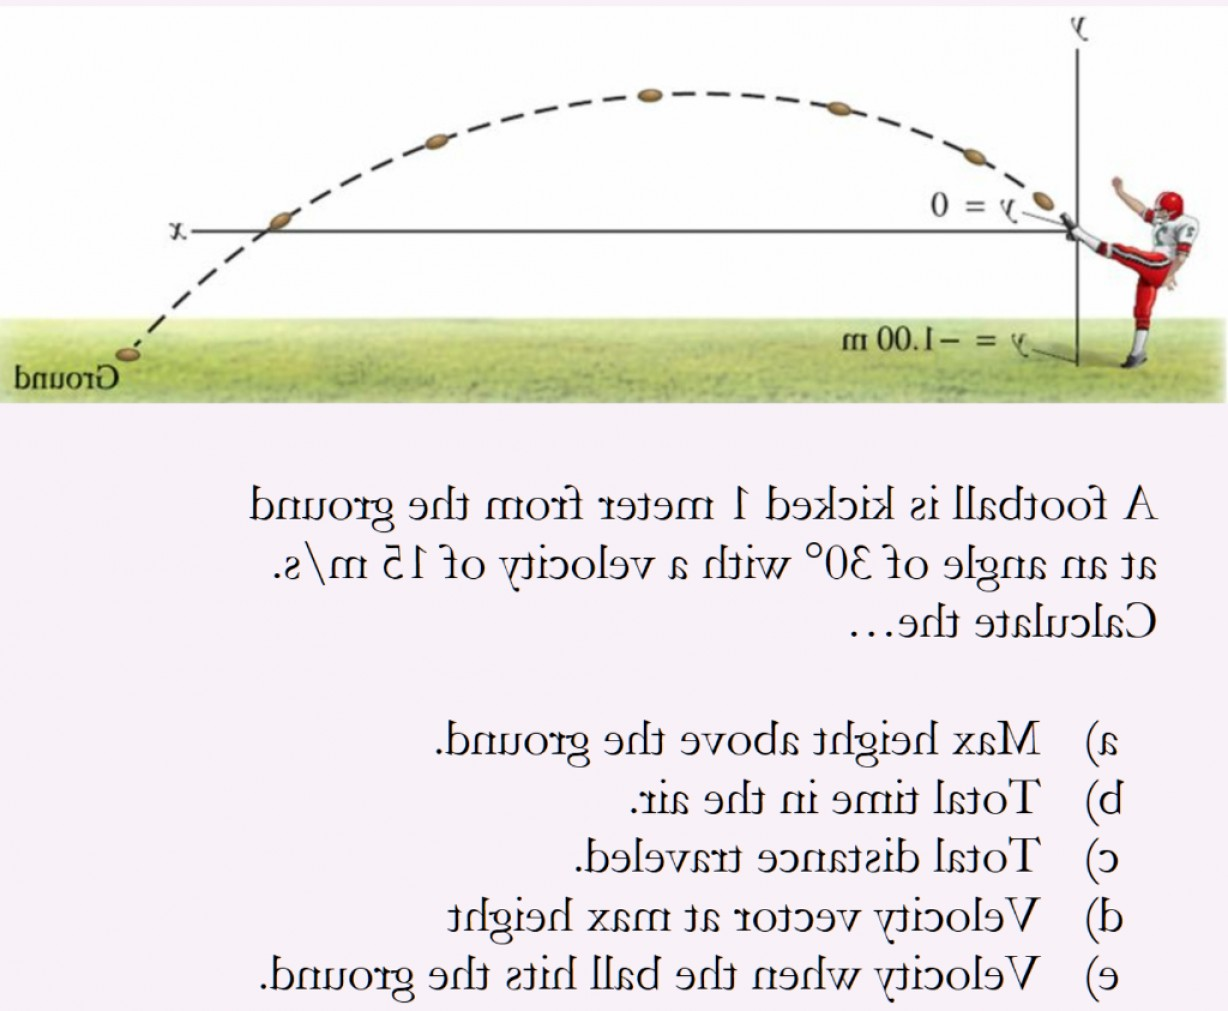 Projectile Motion Velocity Vector: Projectile Motion Problem Involves Solving Max Height Time Air Distance Traveled Velocity Q